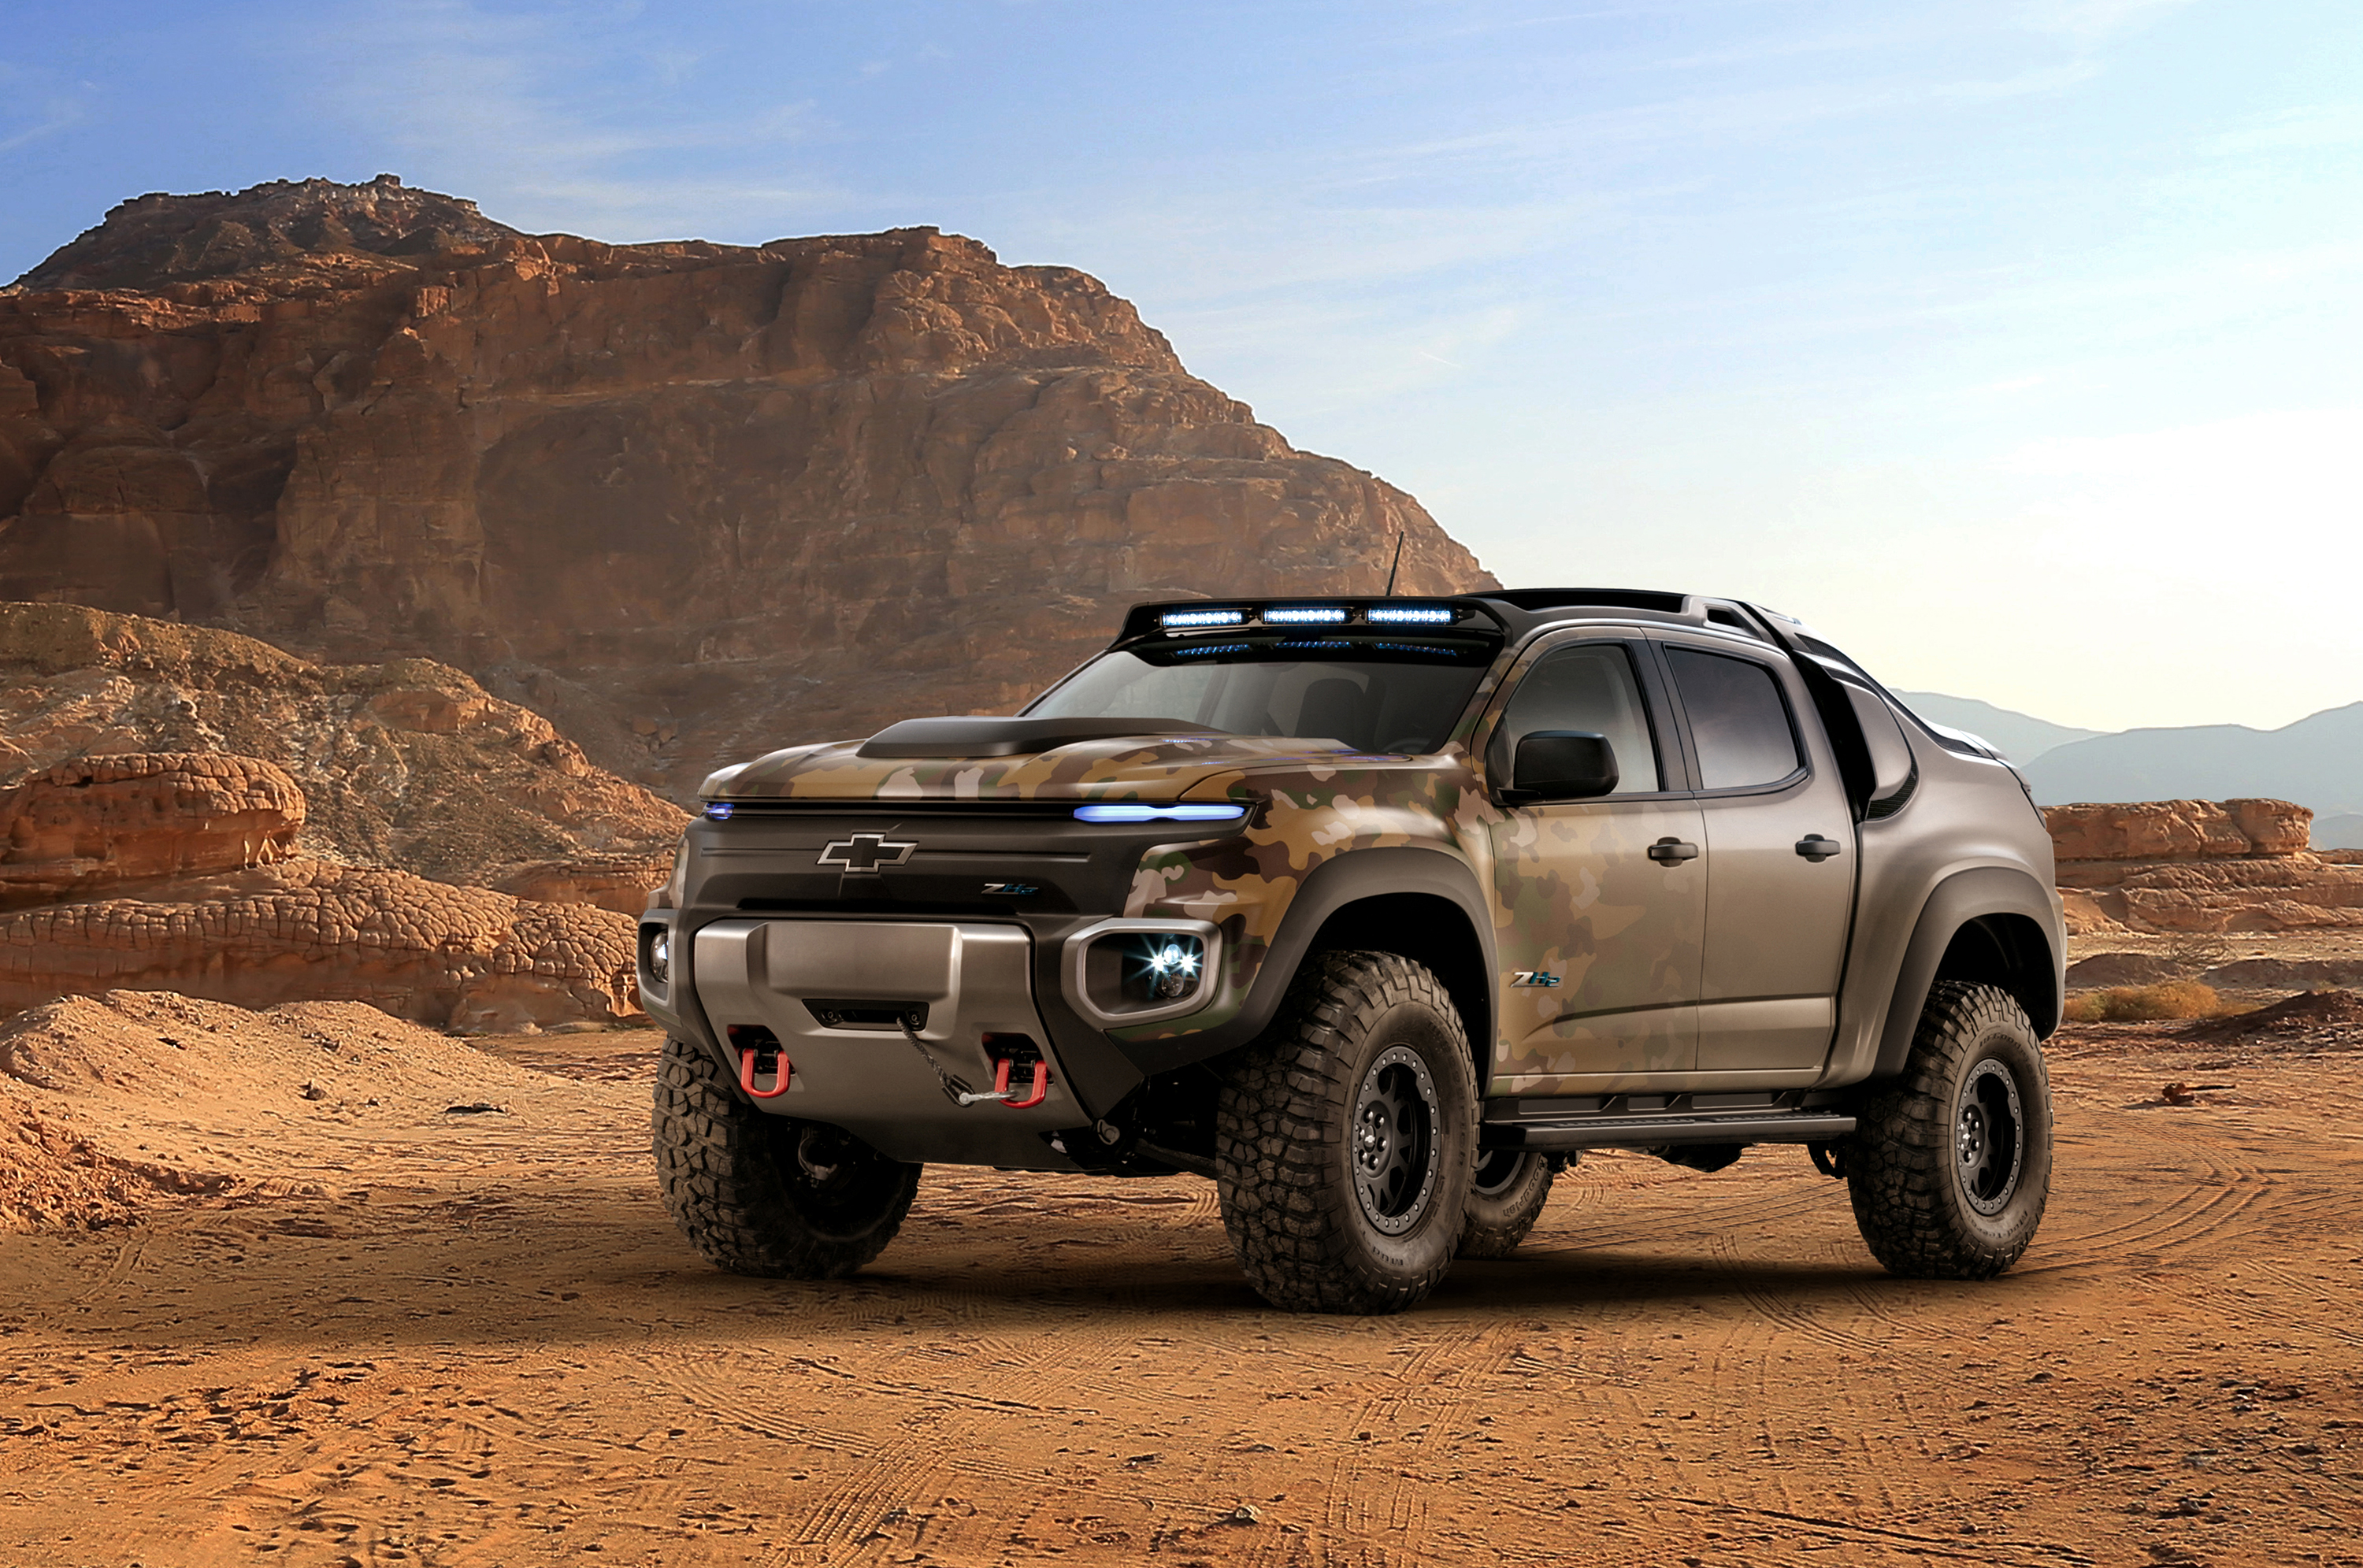 Mission ready chevrolet colorado zh2 fuel cell vehicle for General motors near me